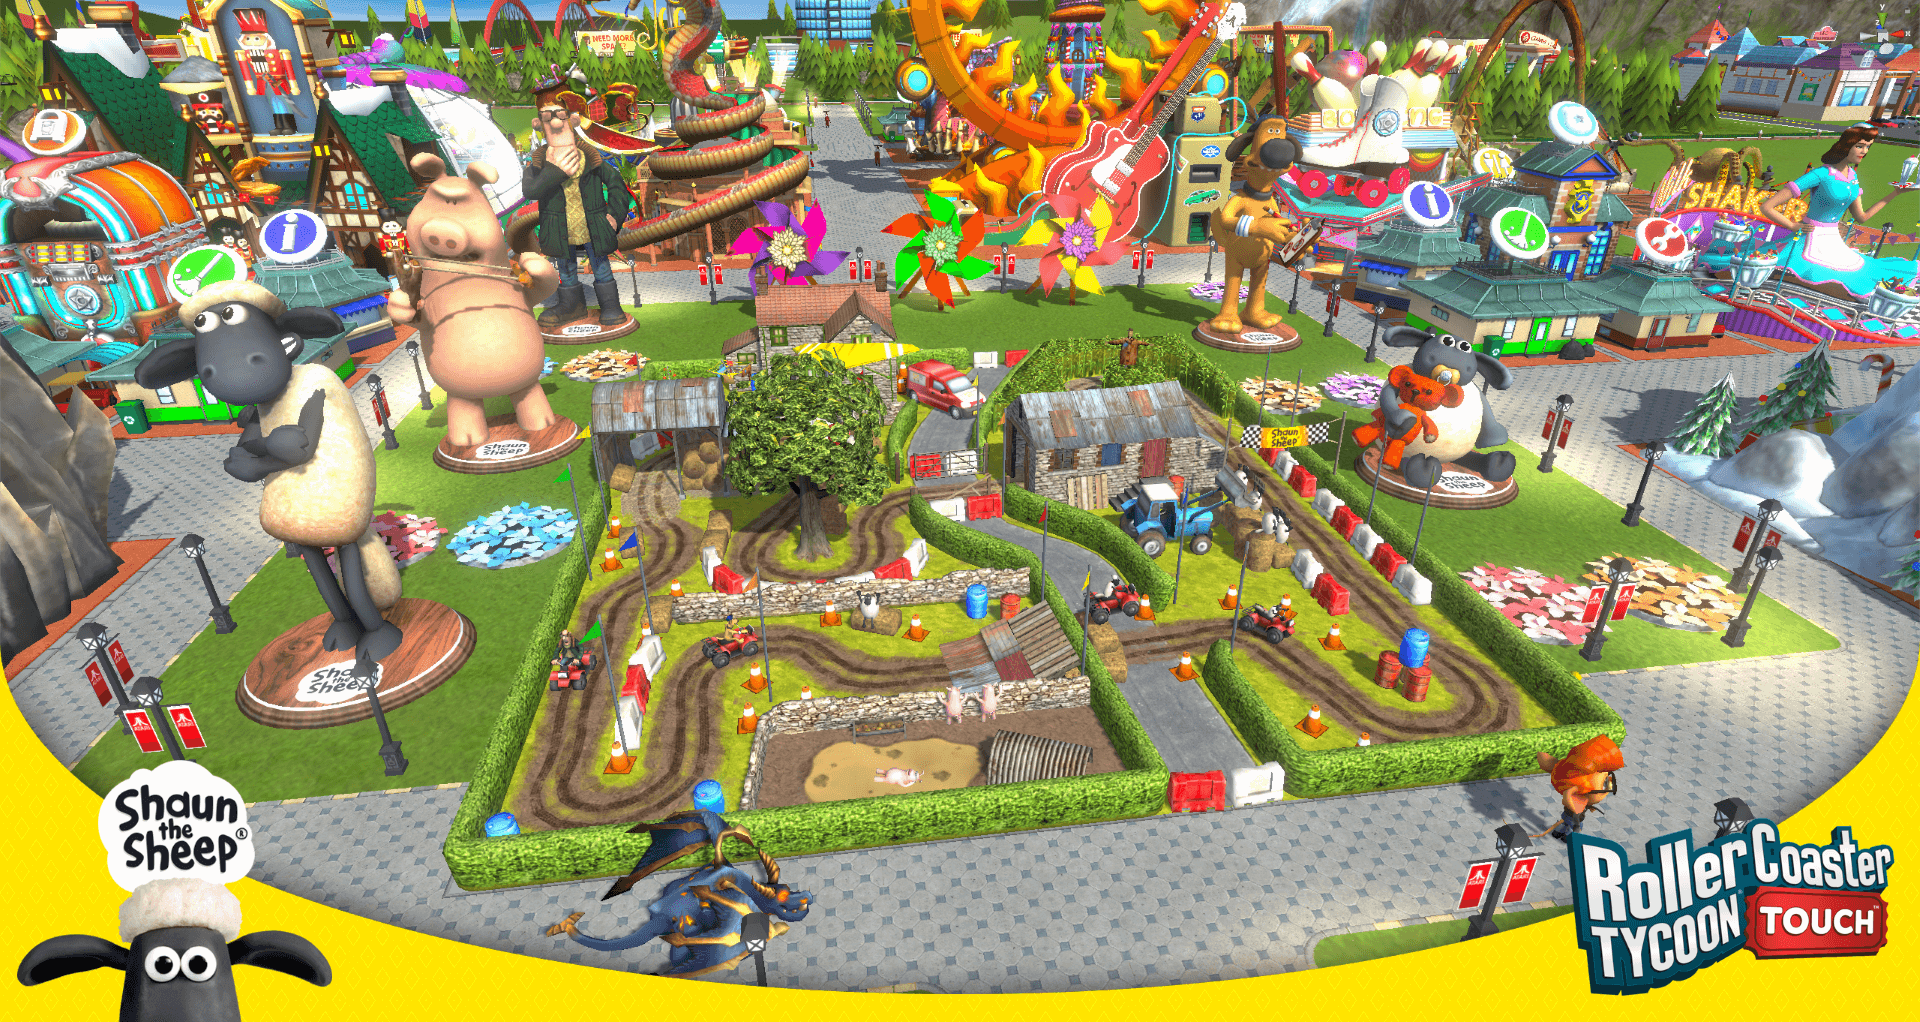 Shaun the Sheep x Roller Coaster Tycoon Touch